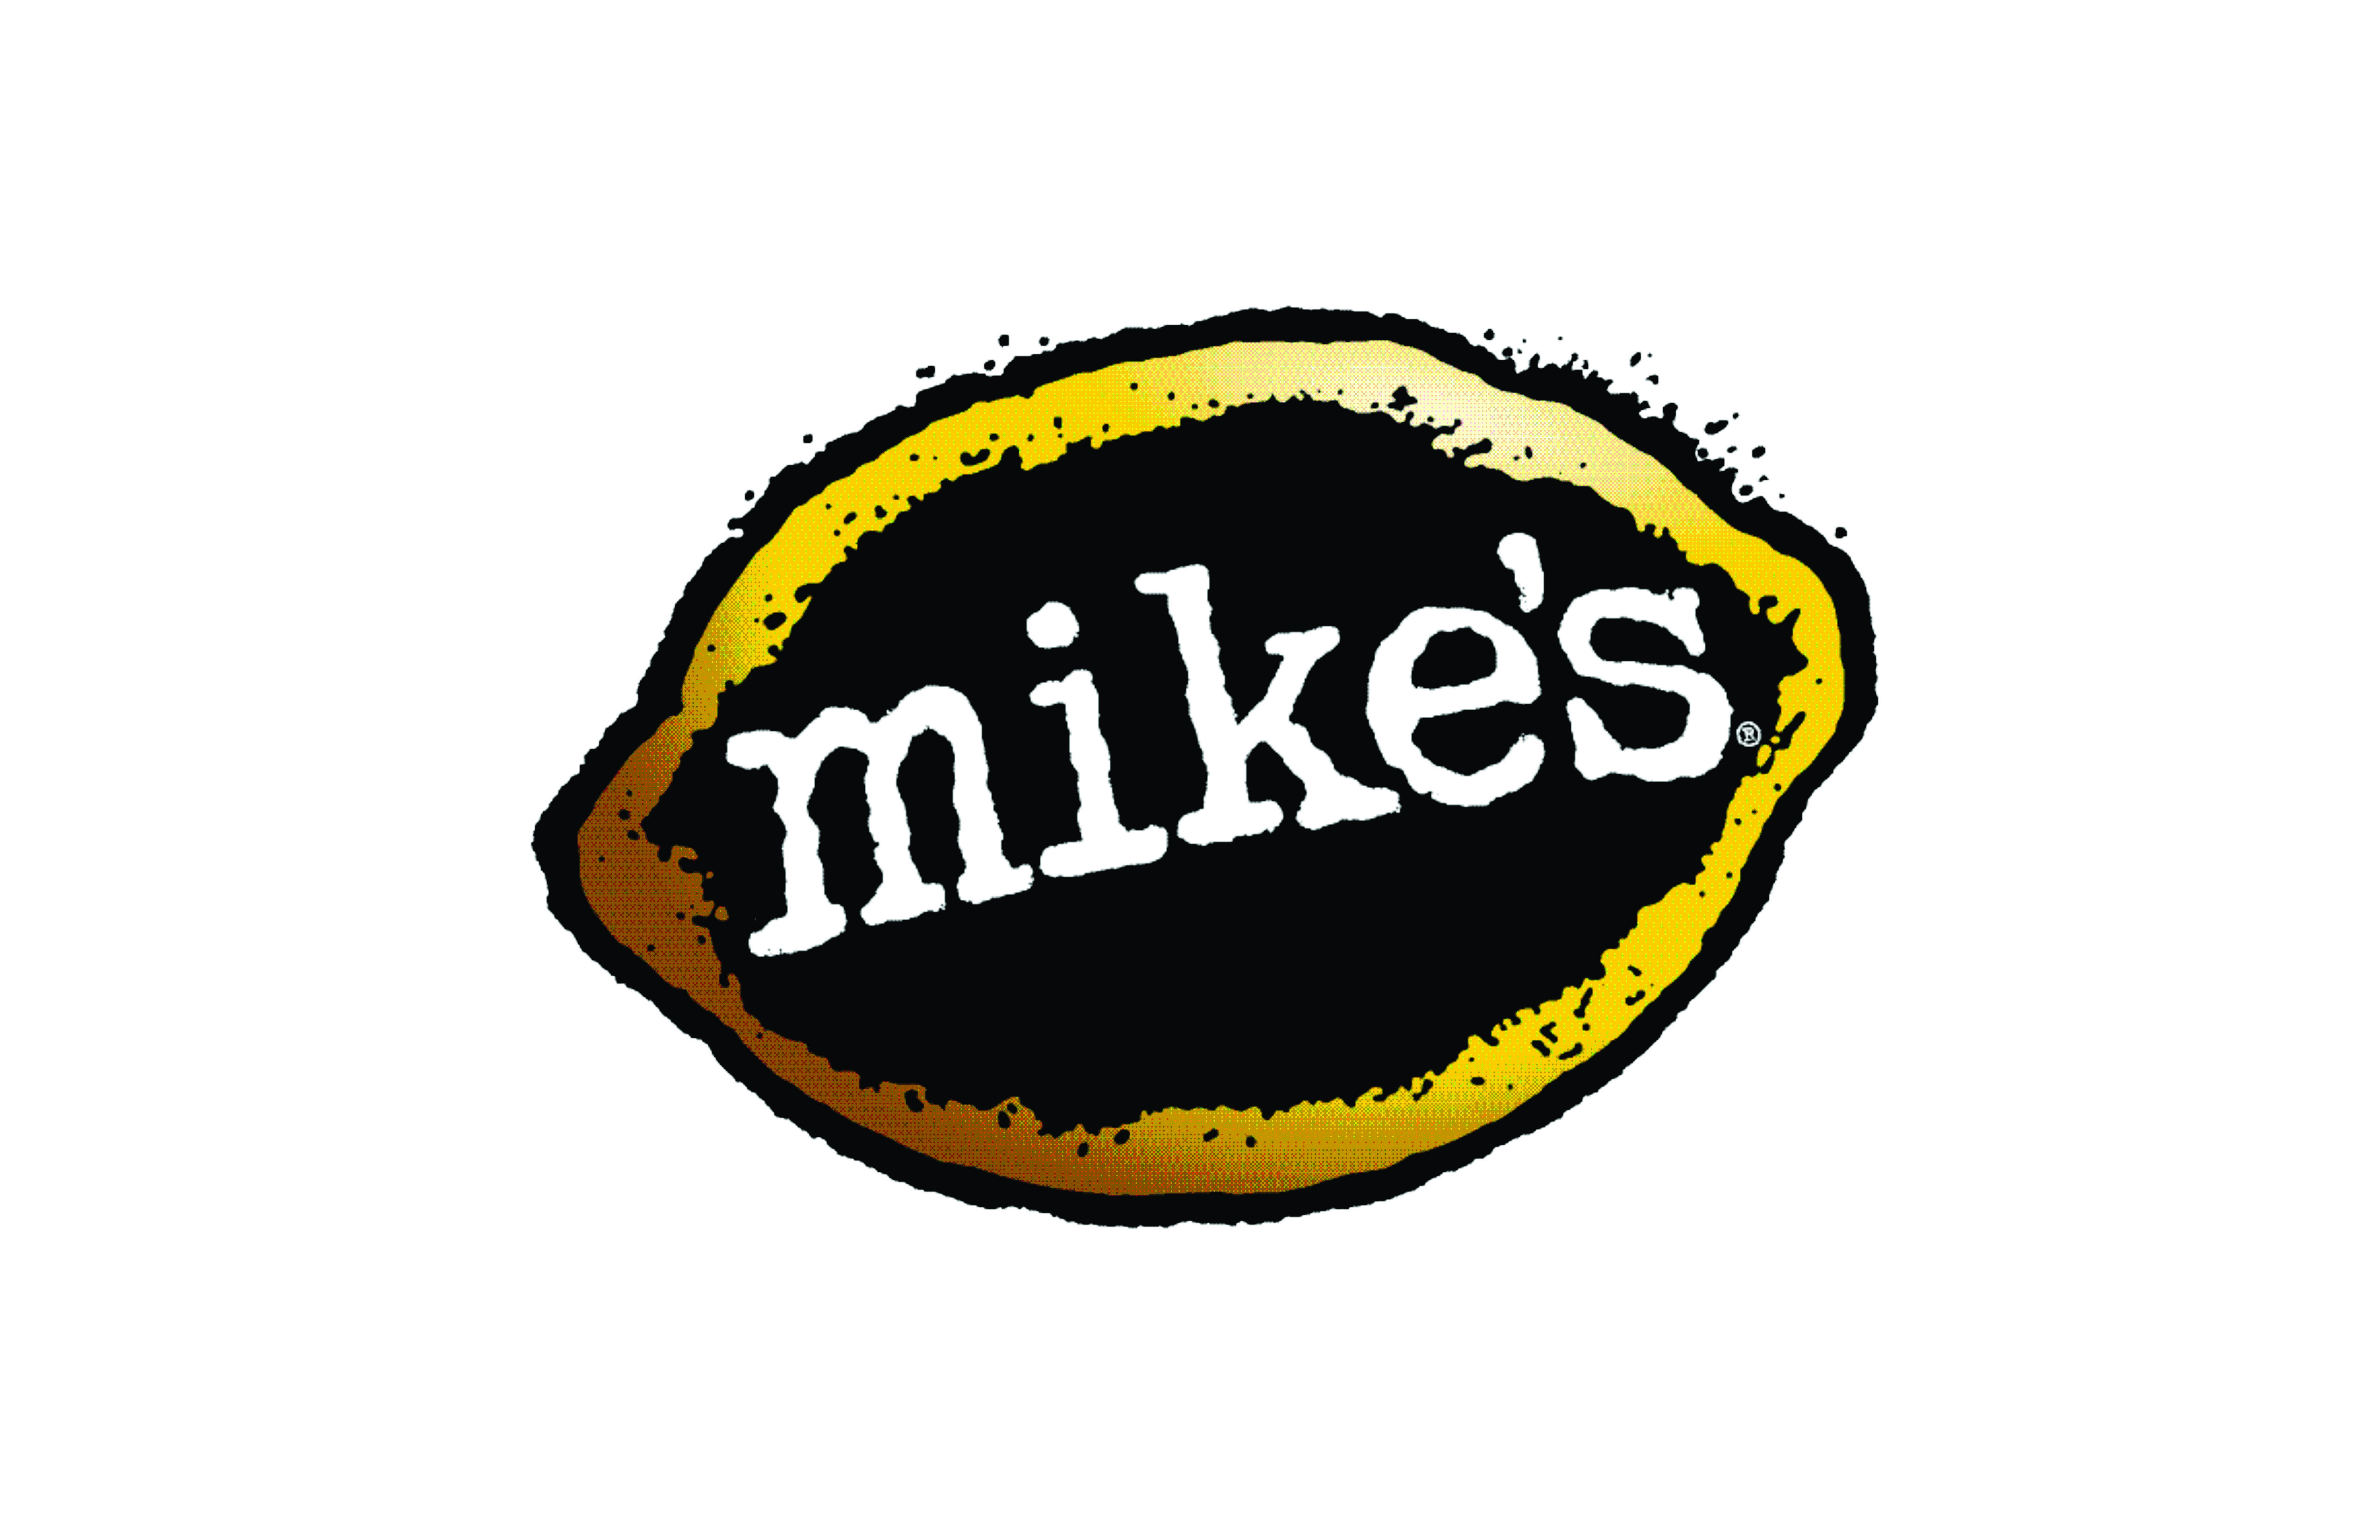 Mike's logo